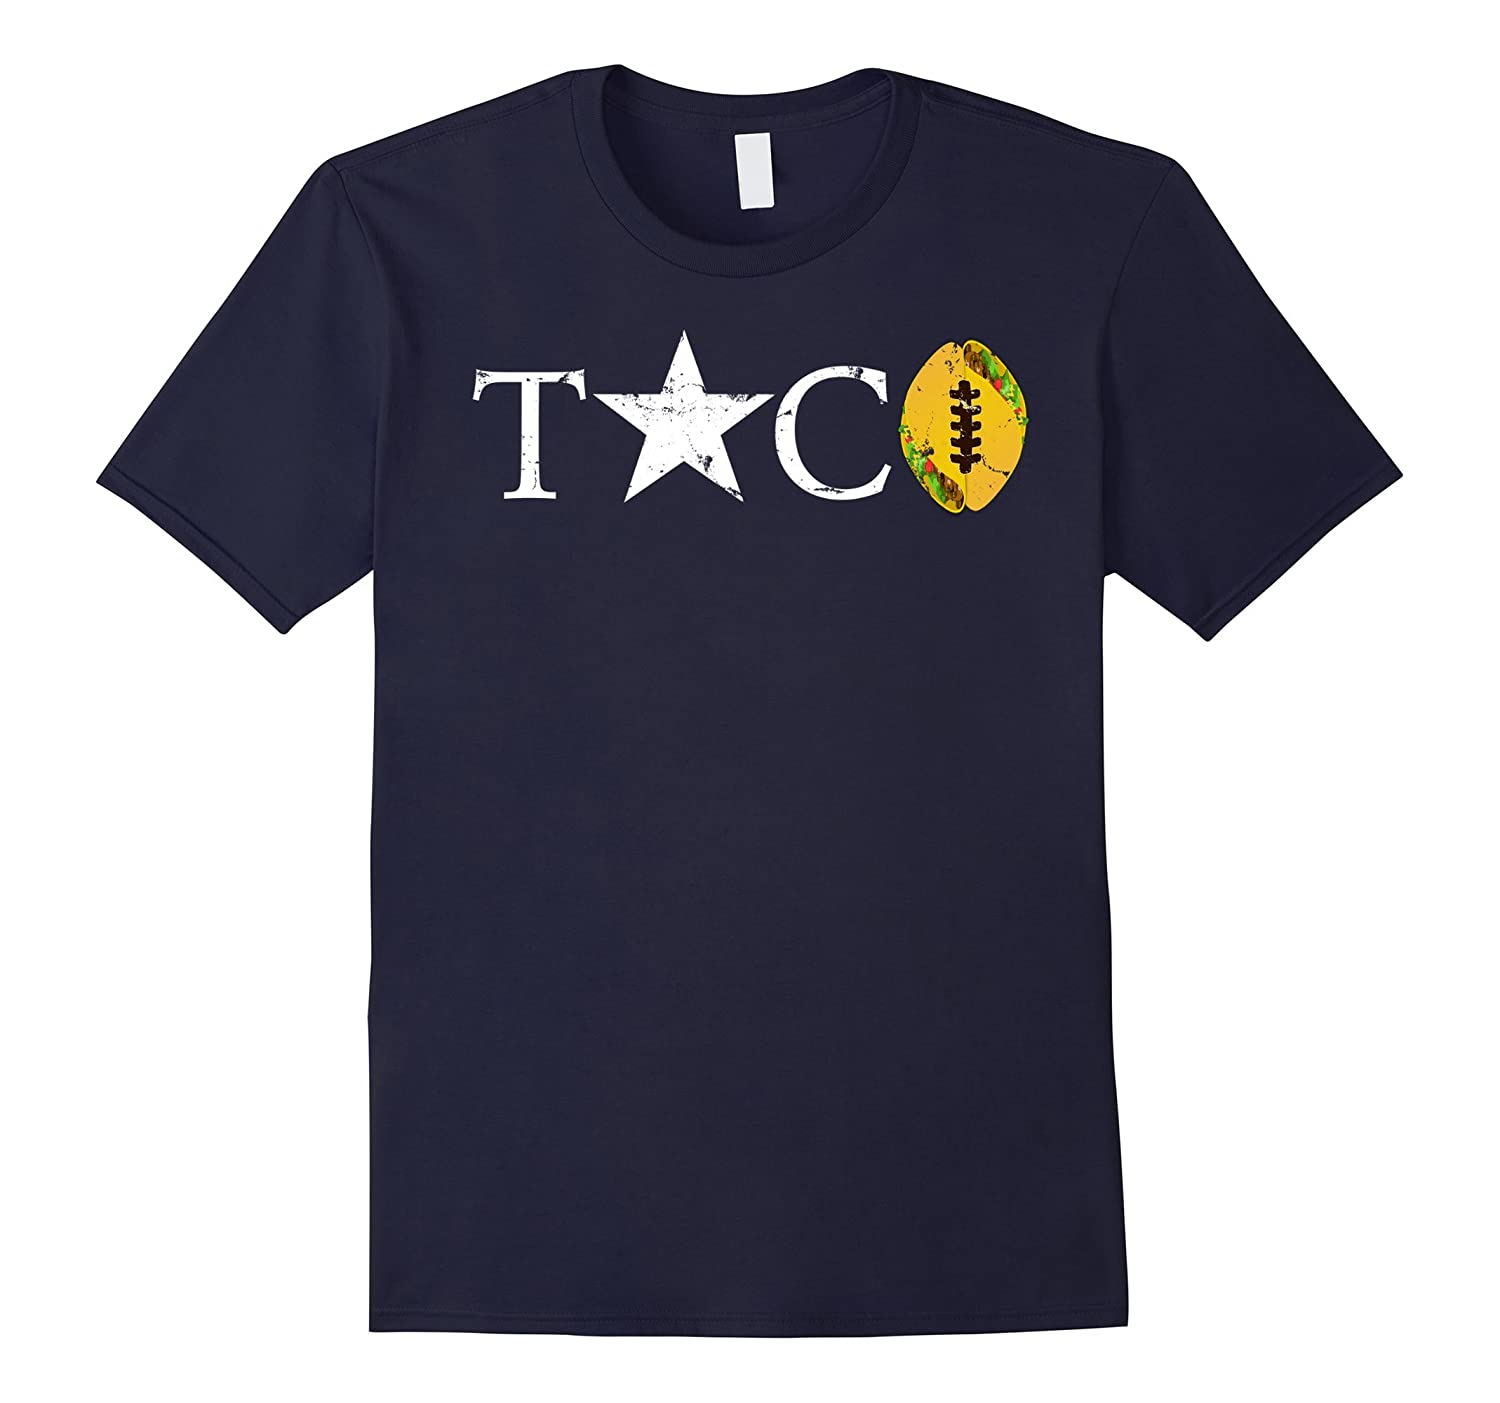 Epic Taco Football Star T-Shirt, Vintage-T-Shirt